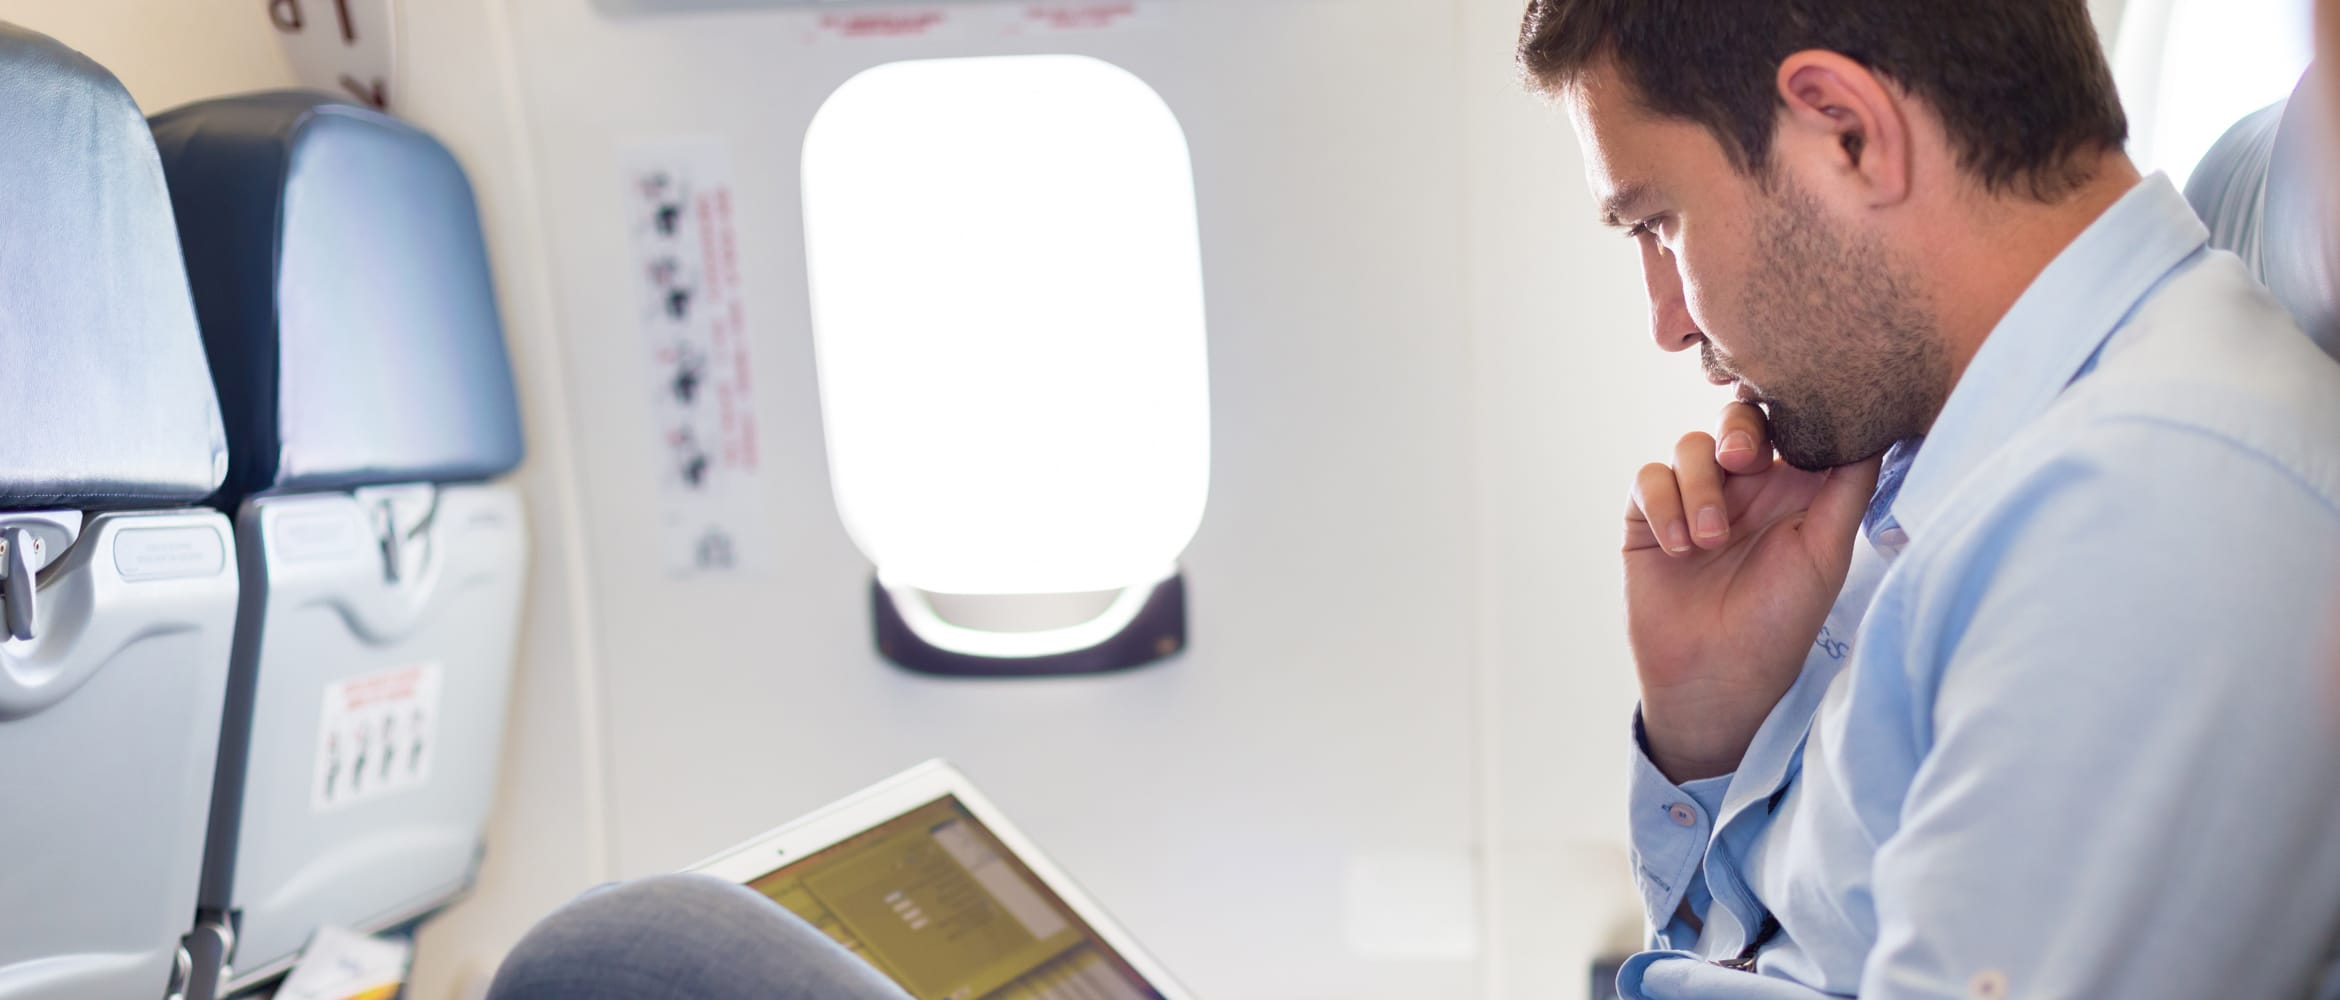 Gentleman sat on a plane using a laptop